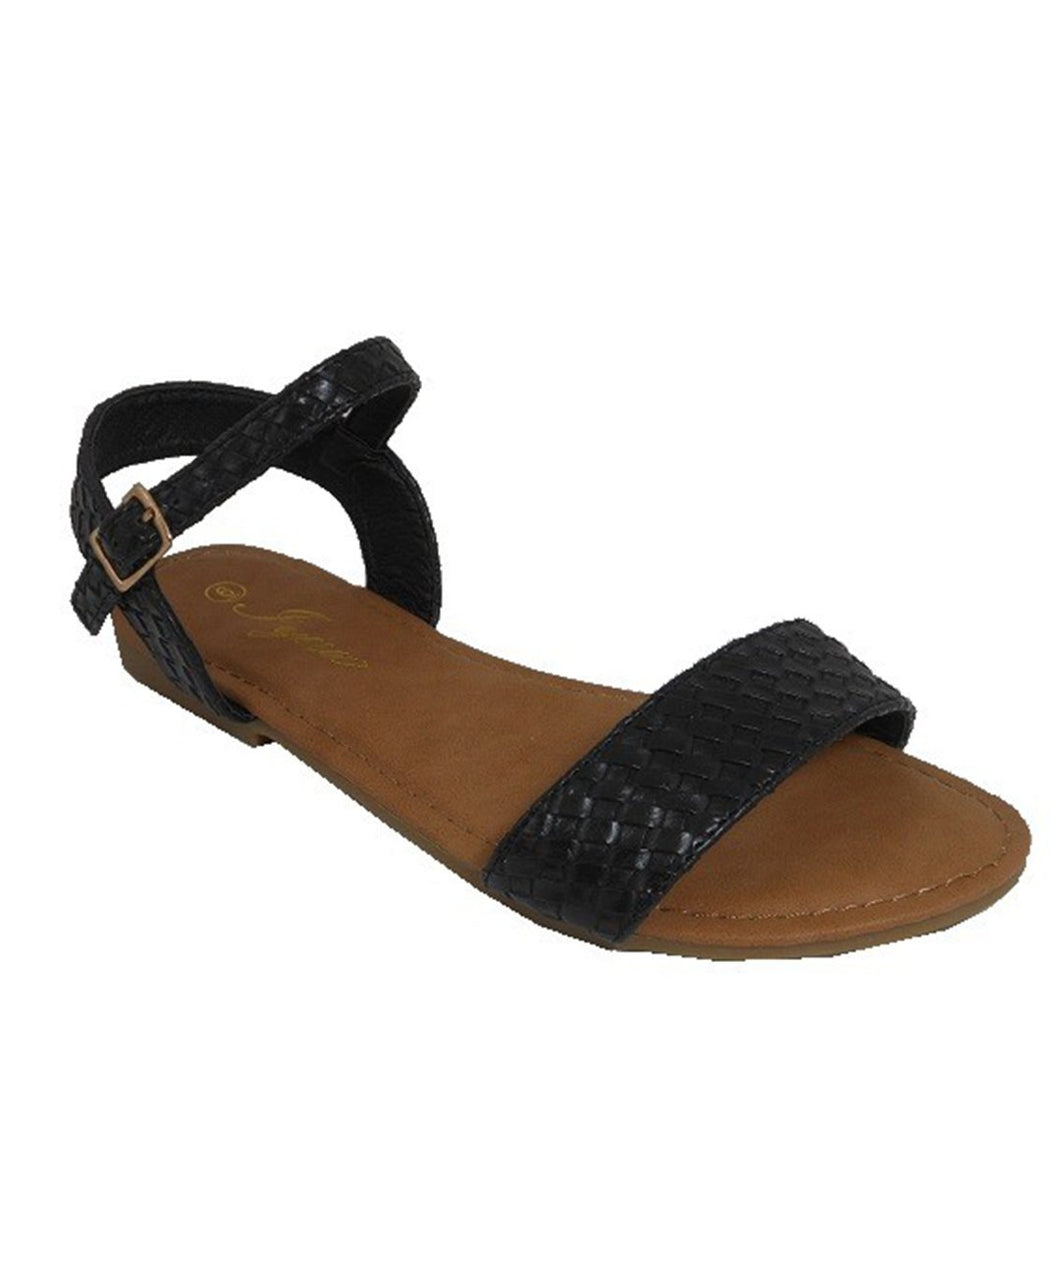 Sandals with Weave Design